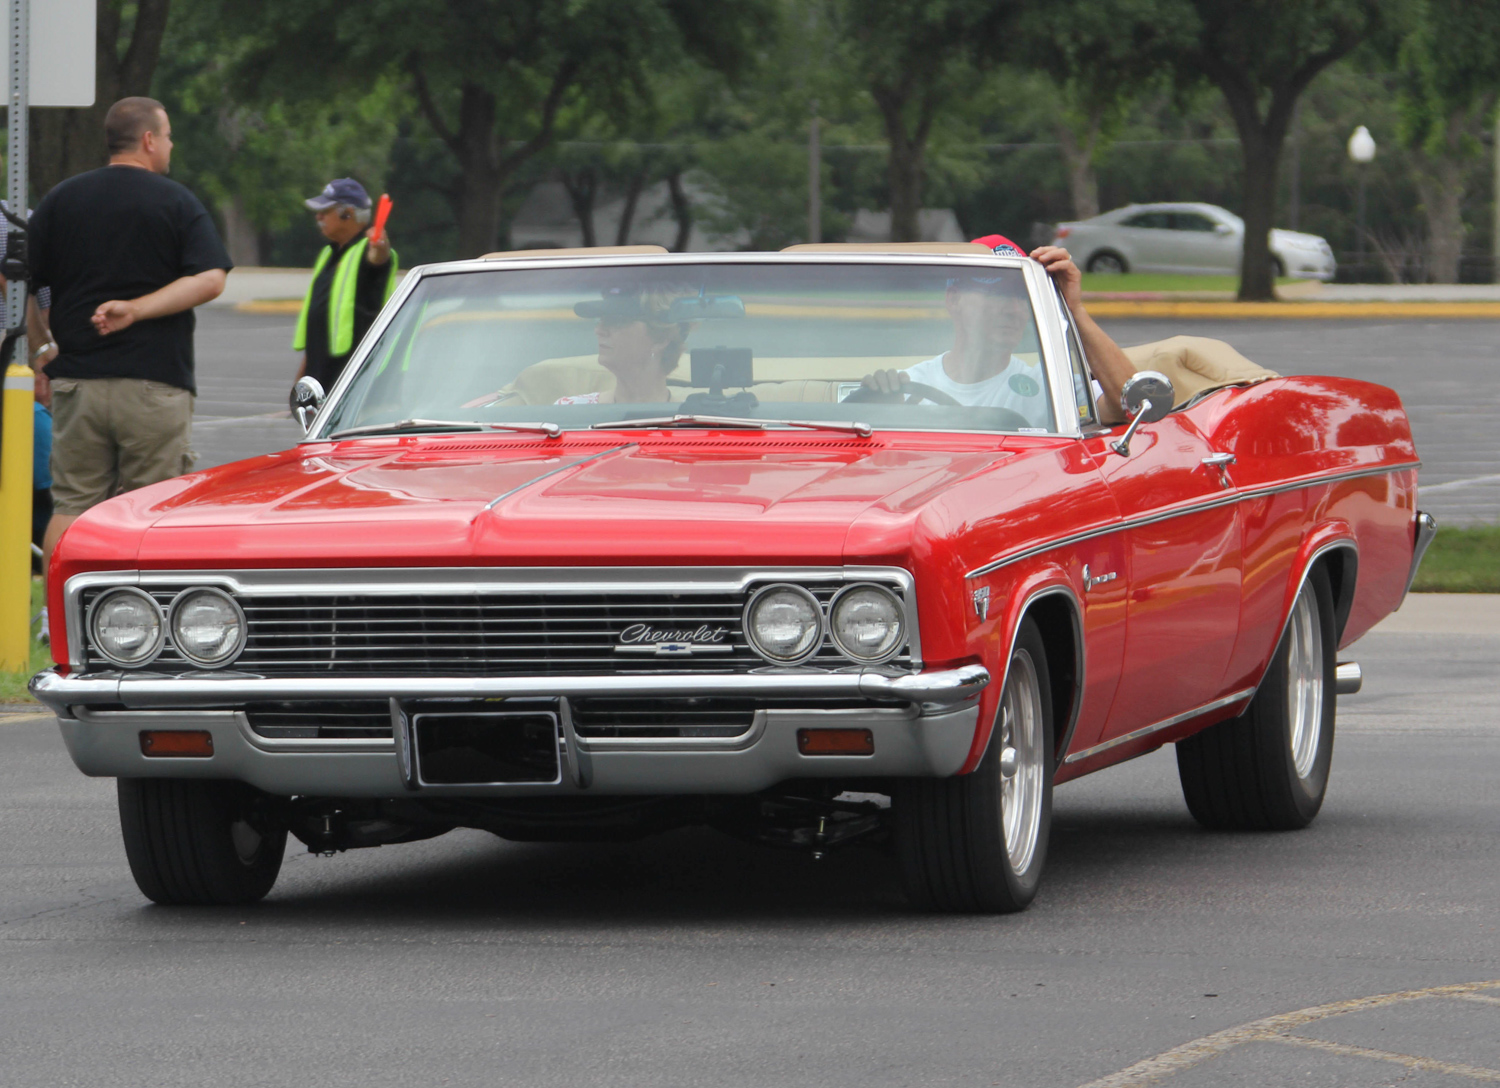 Red b-body impala front 3/4